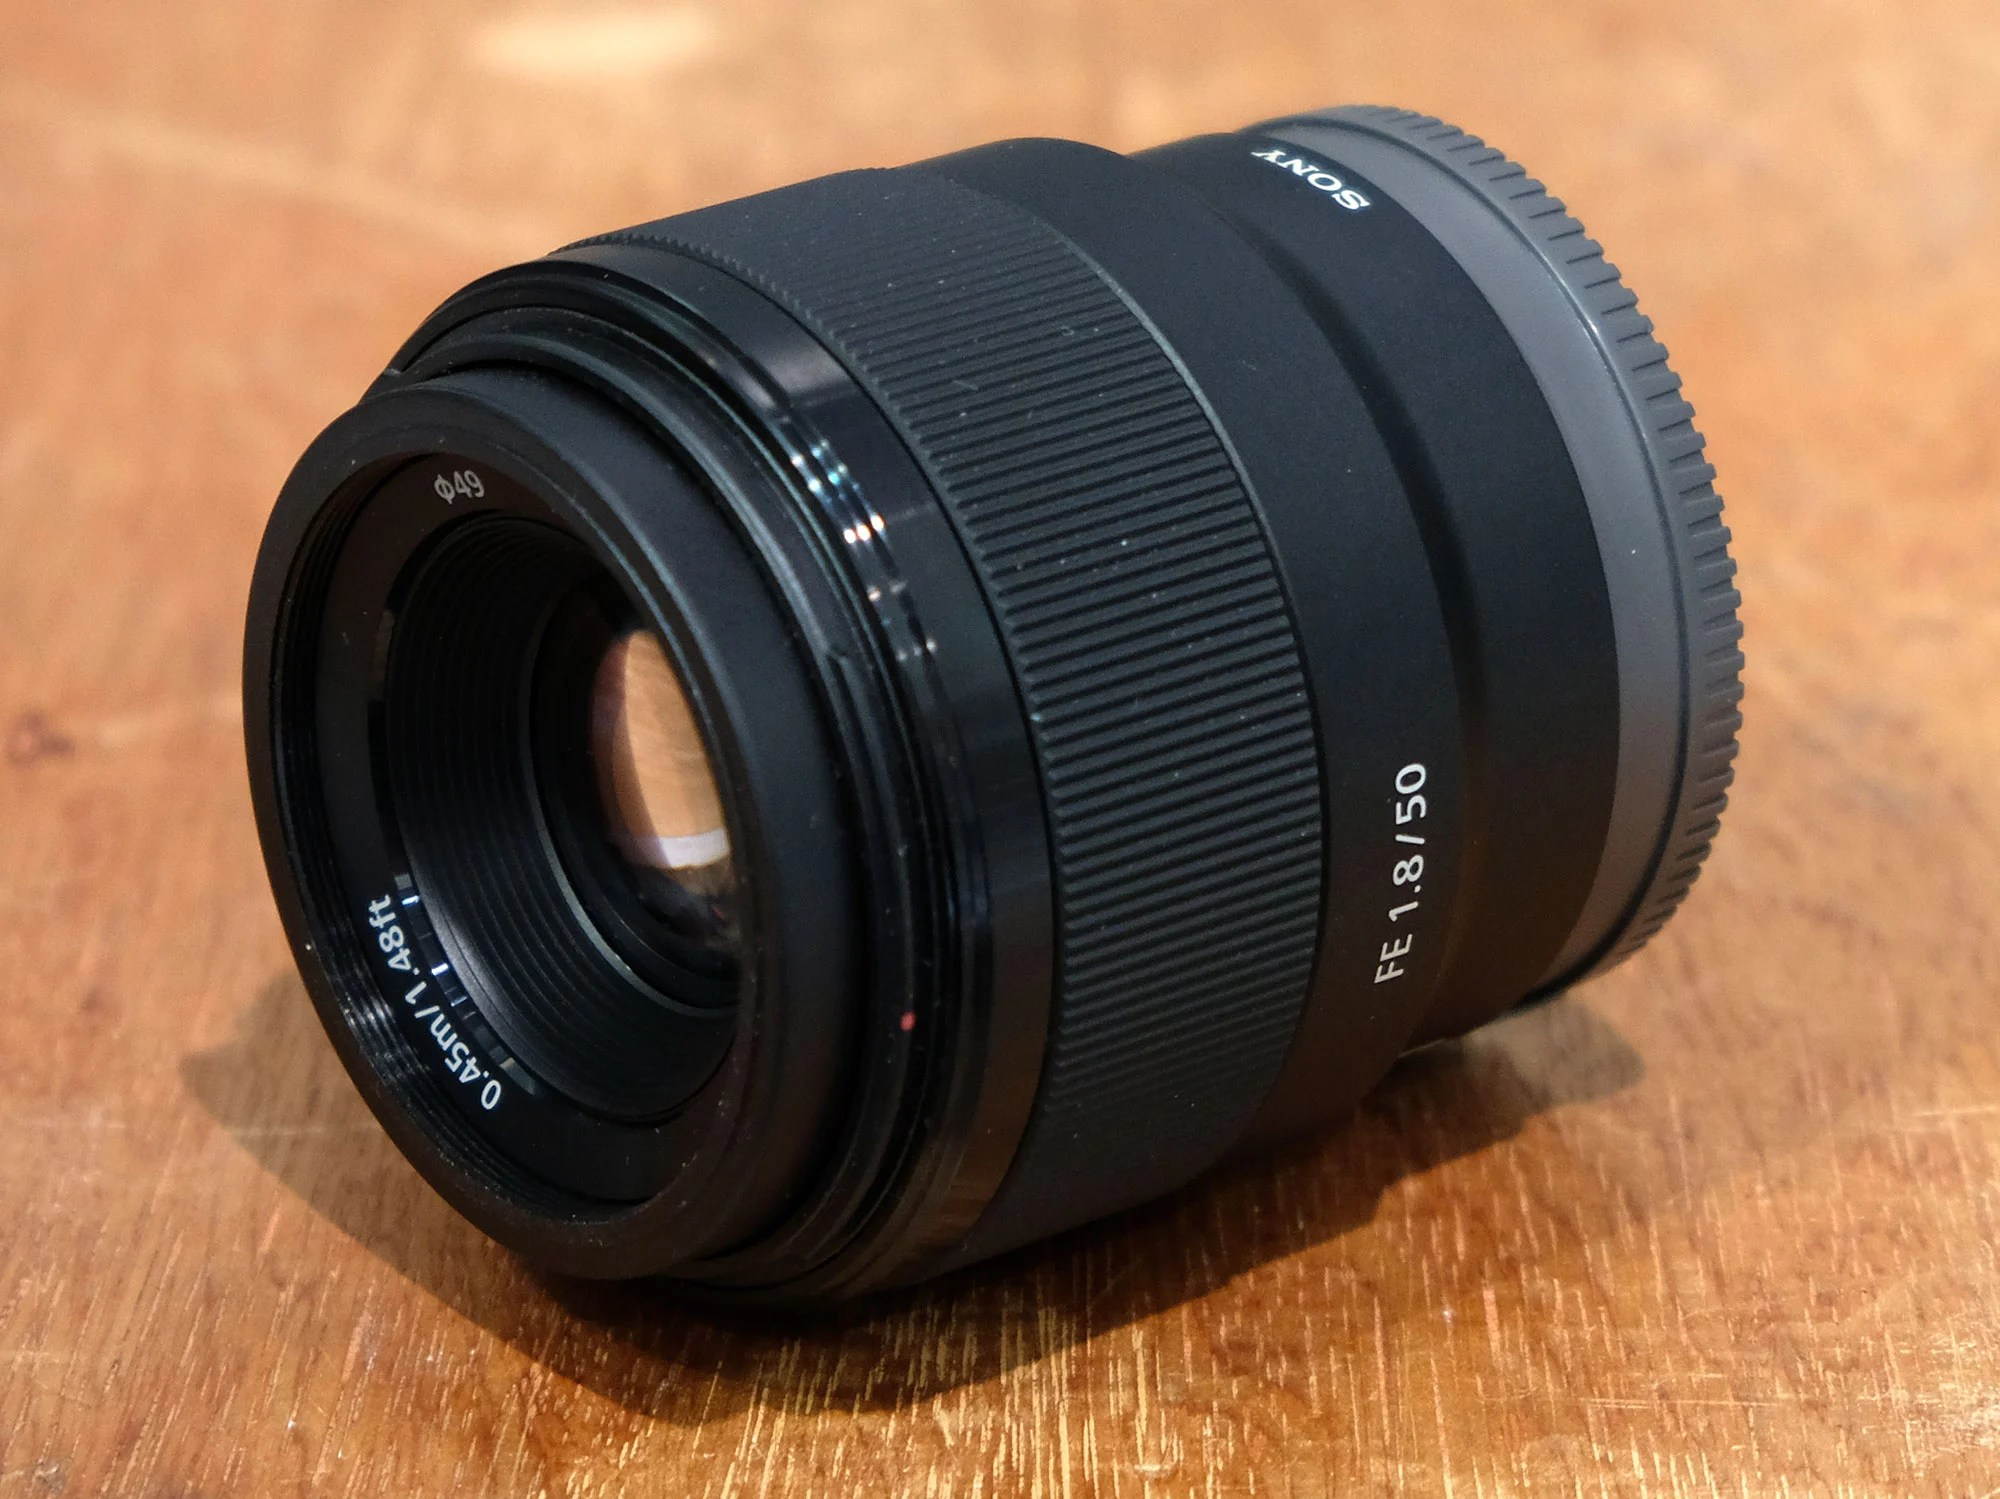 Sony FE 50mm f1.8 review so far -   Cameralabs